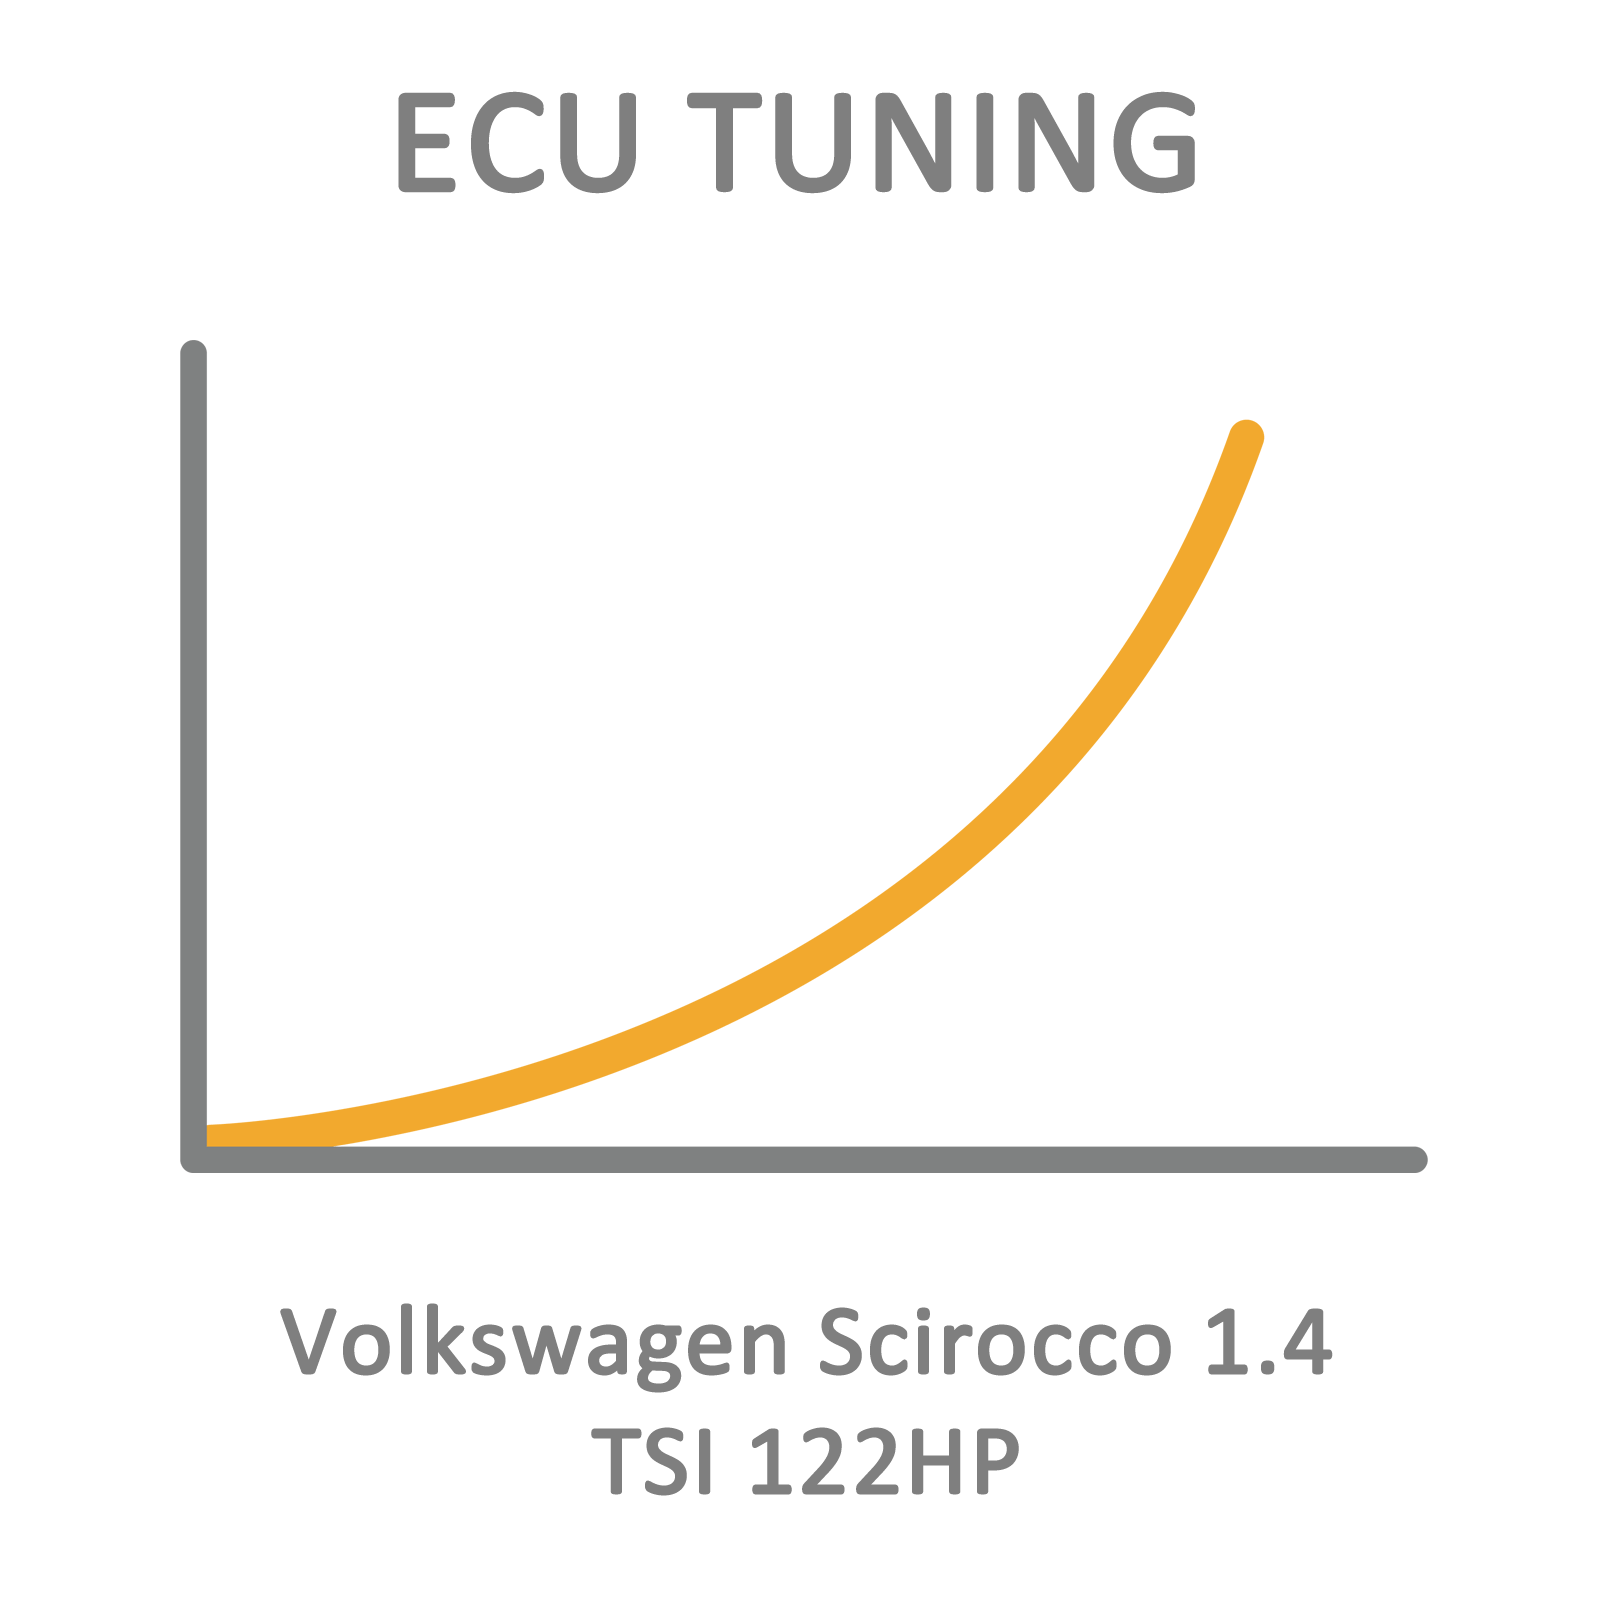 Volkswagen Scirocco 1.4 TSI 122HP ECU Tuning Remapping